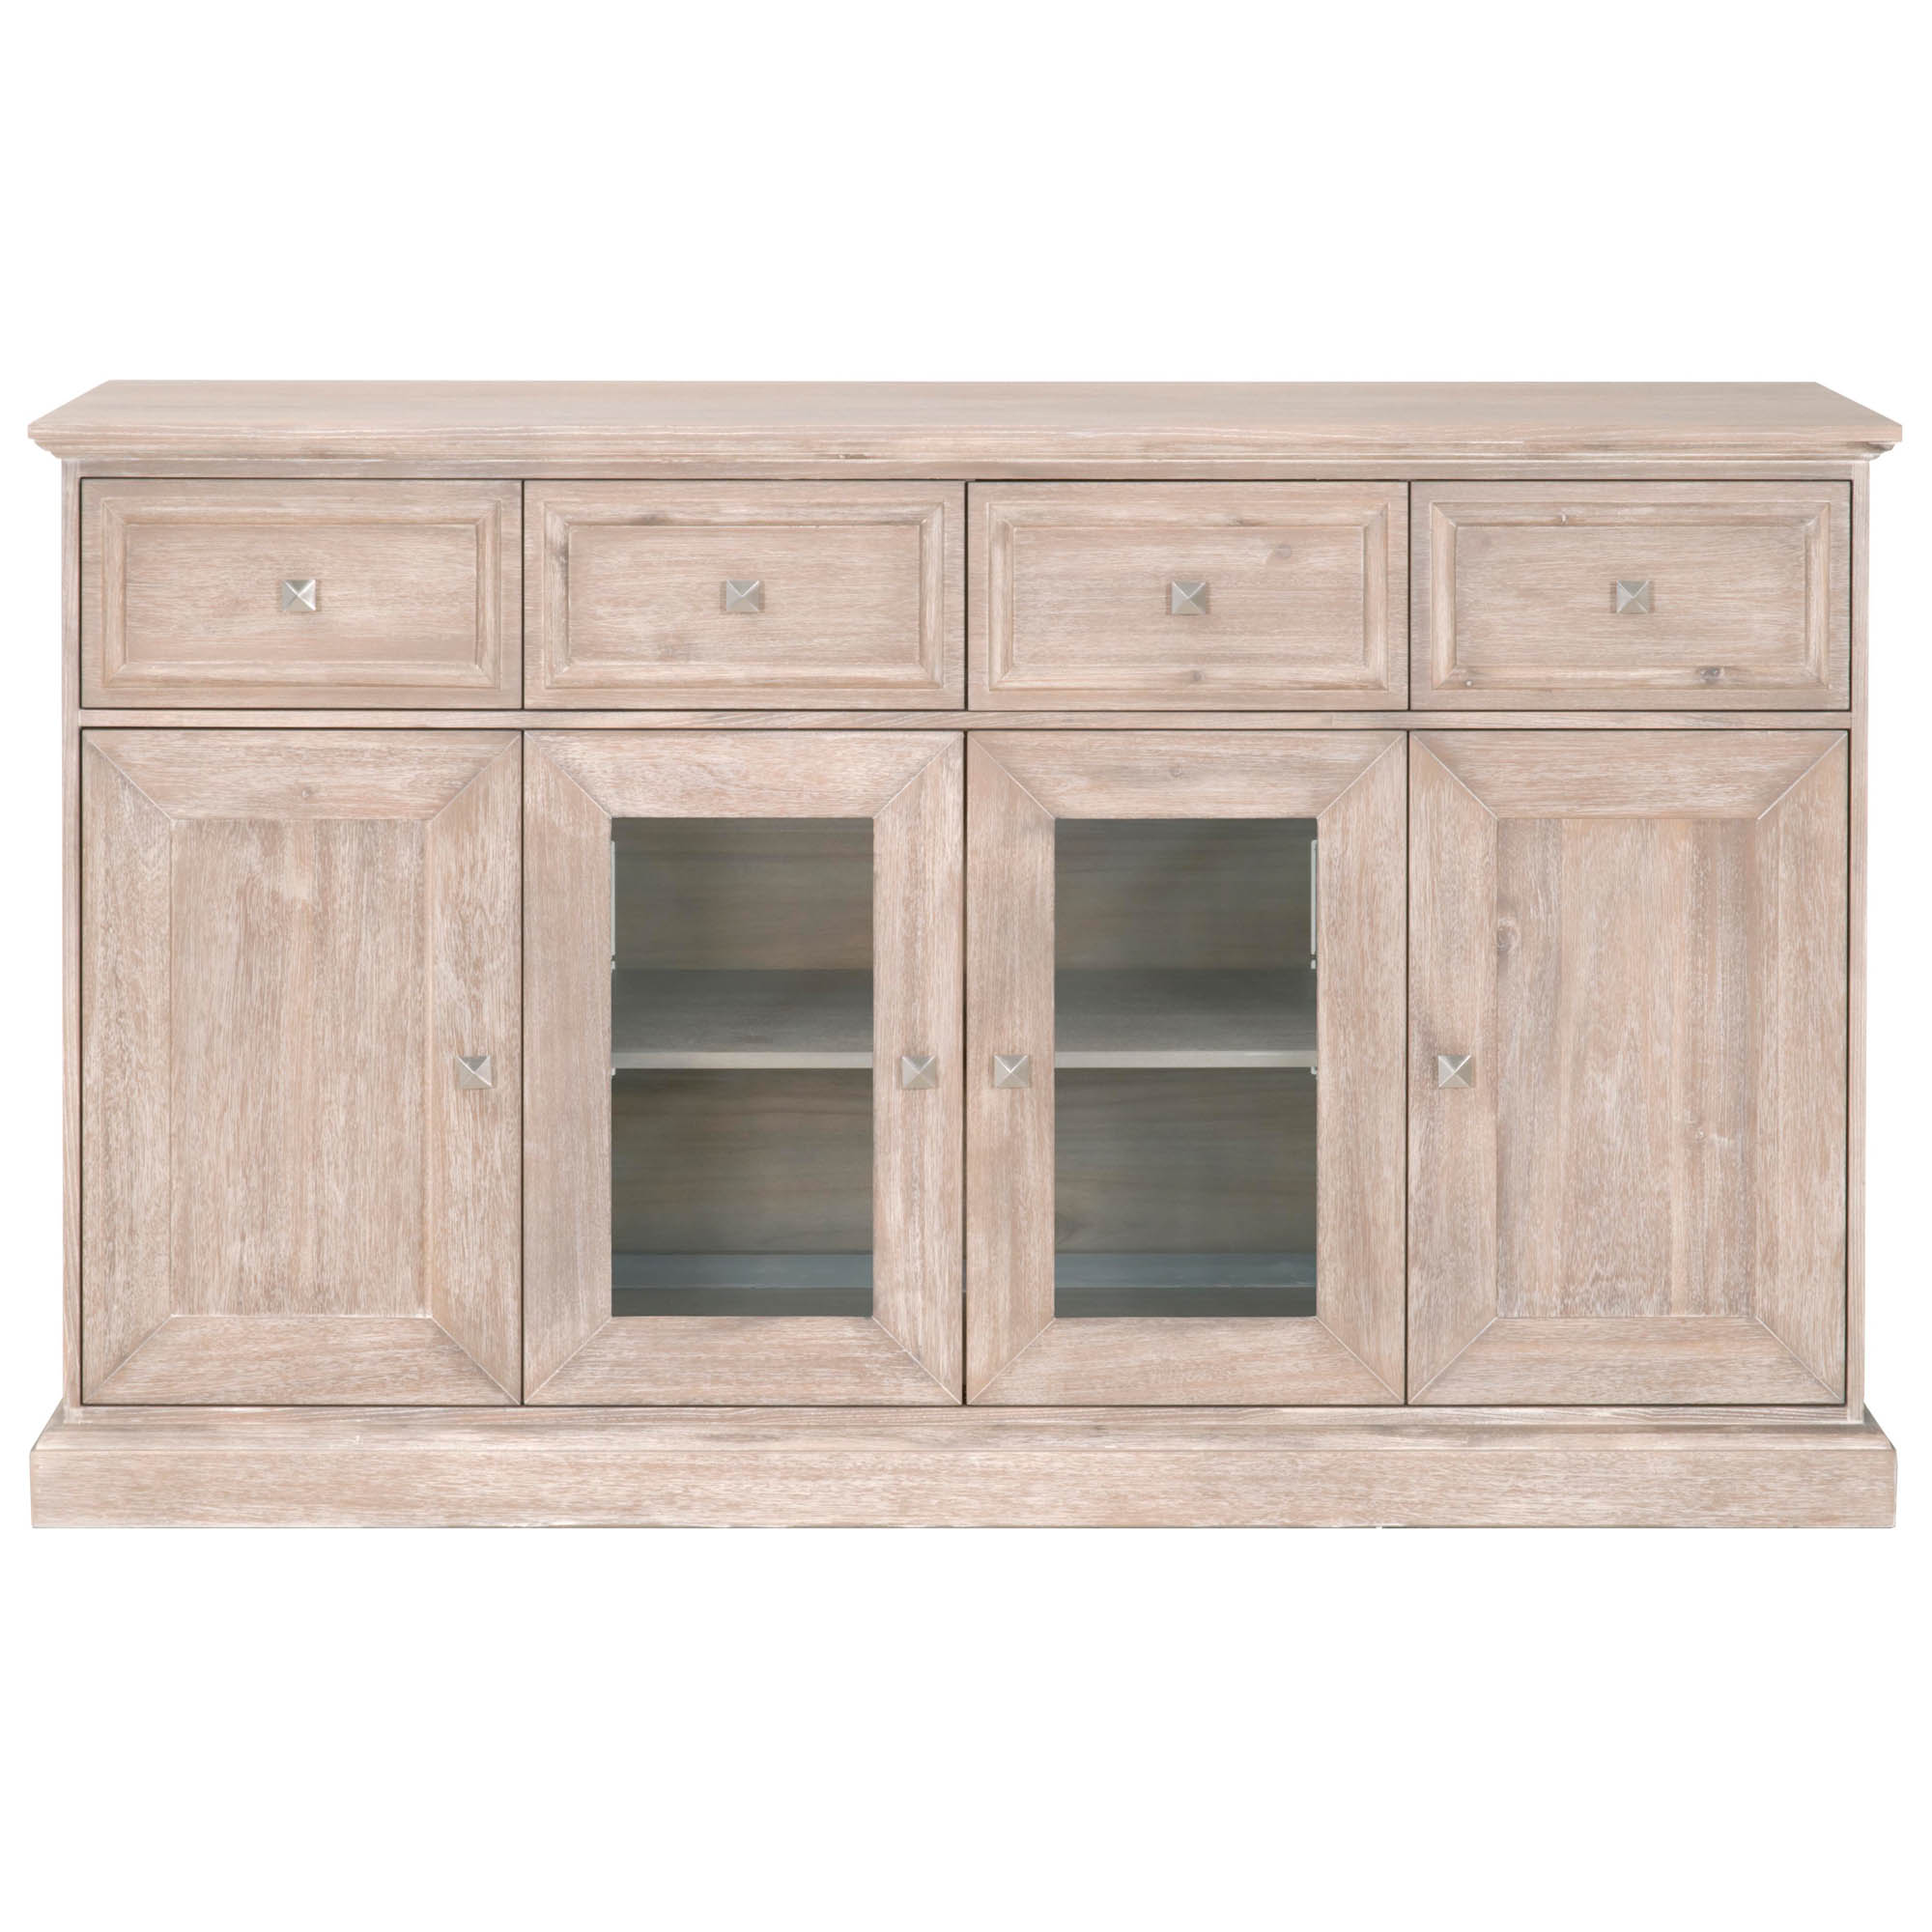 Hudson Sideboard - Natural Gray_1-01.jpg